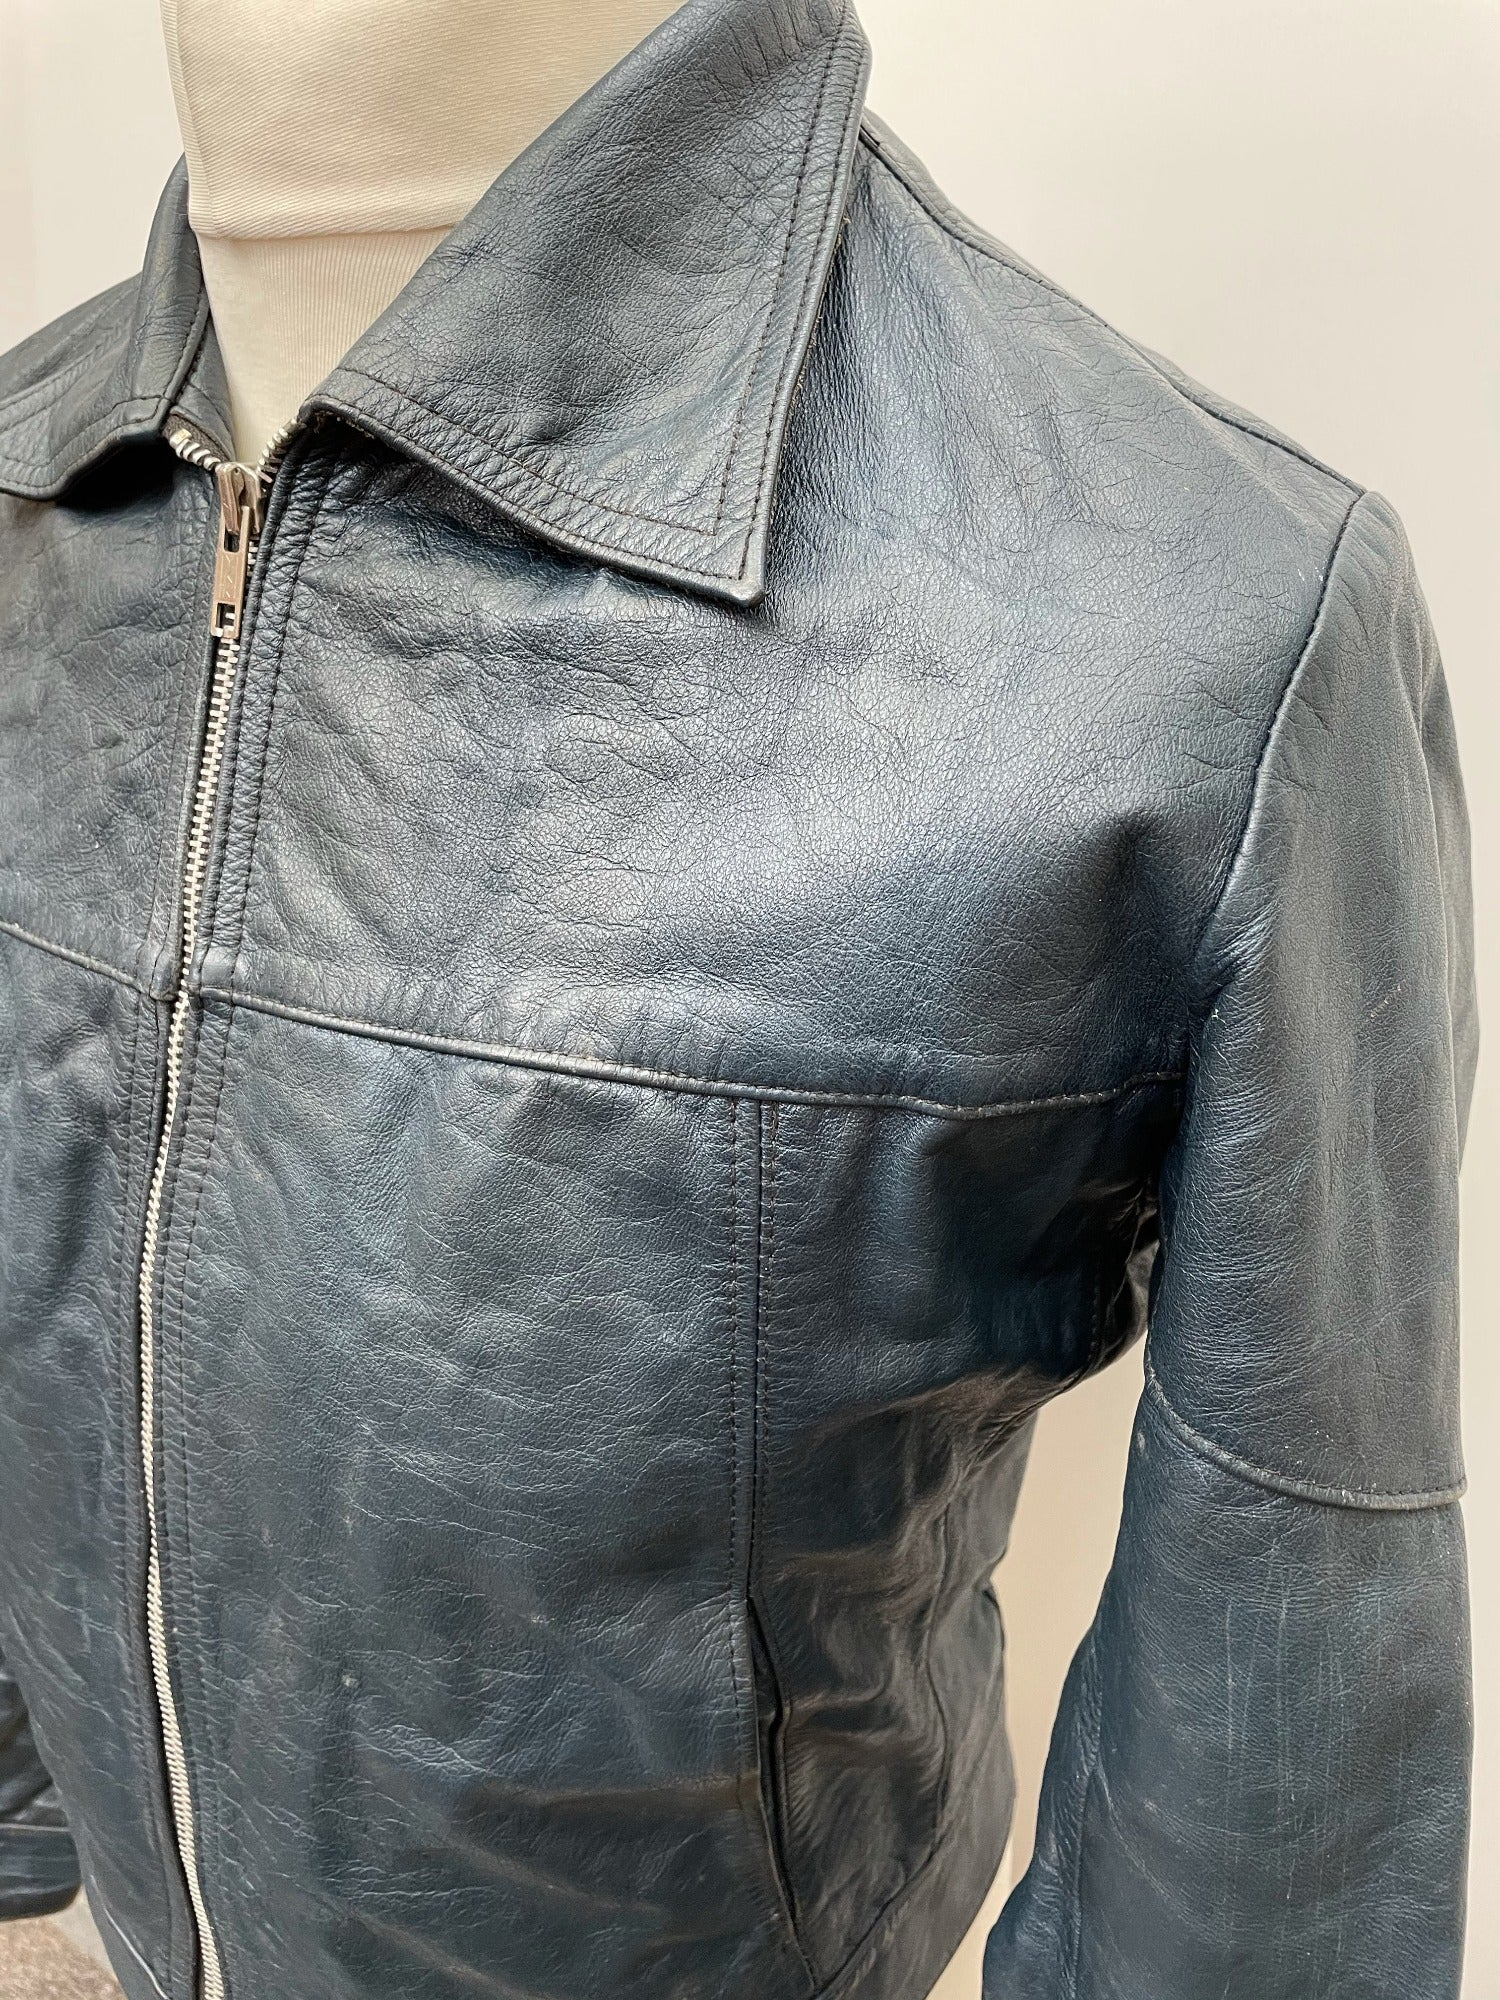 zip  vintage  Urban Village Vintage  retro  pockets  Mens jacket  mens coat  mens  M  Leather Jacket  Leather Coat  Leather  Jacket  denim  collar  blue  big collar  70s  70  1970s